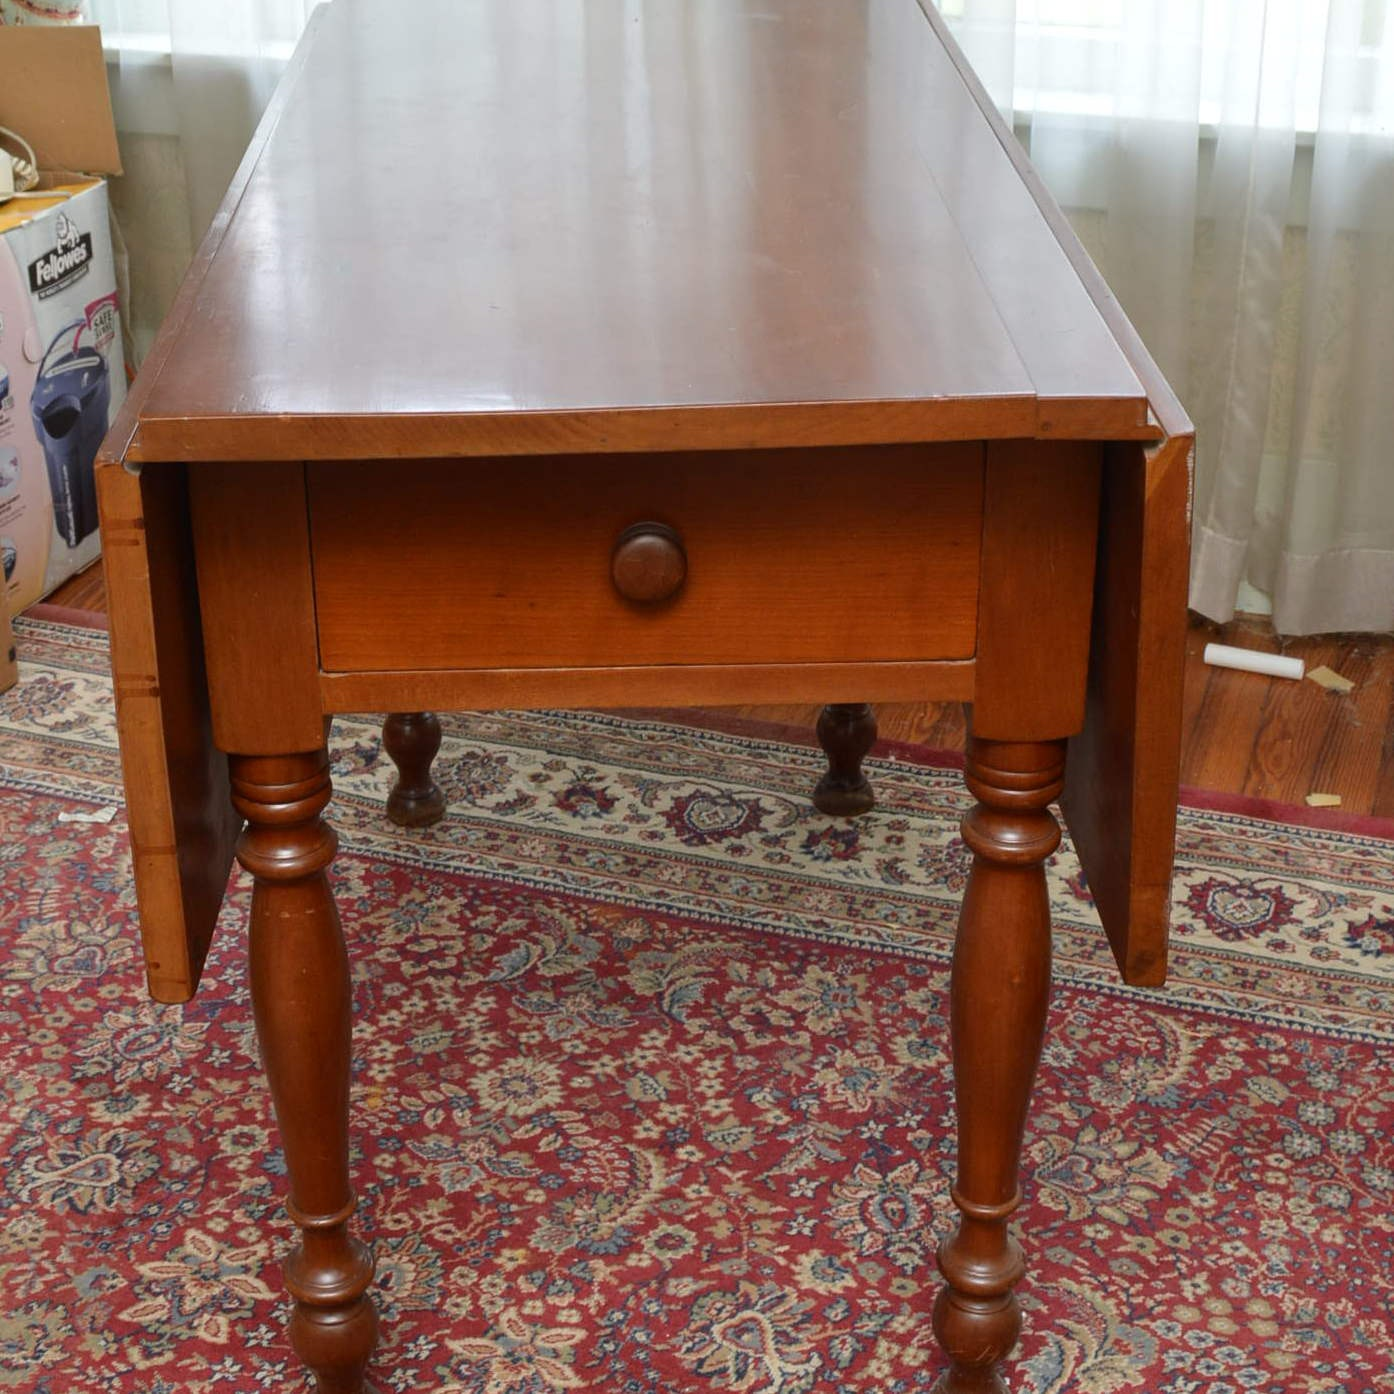 Antique Double Drop Leaf Table